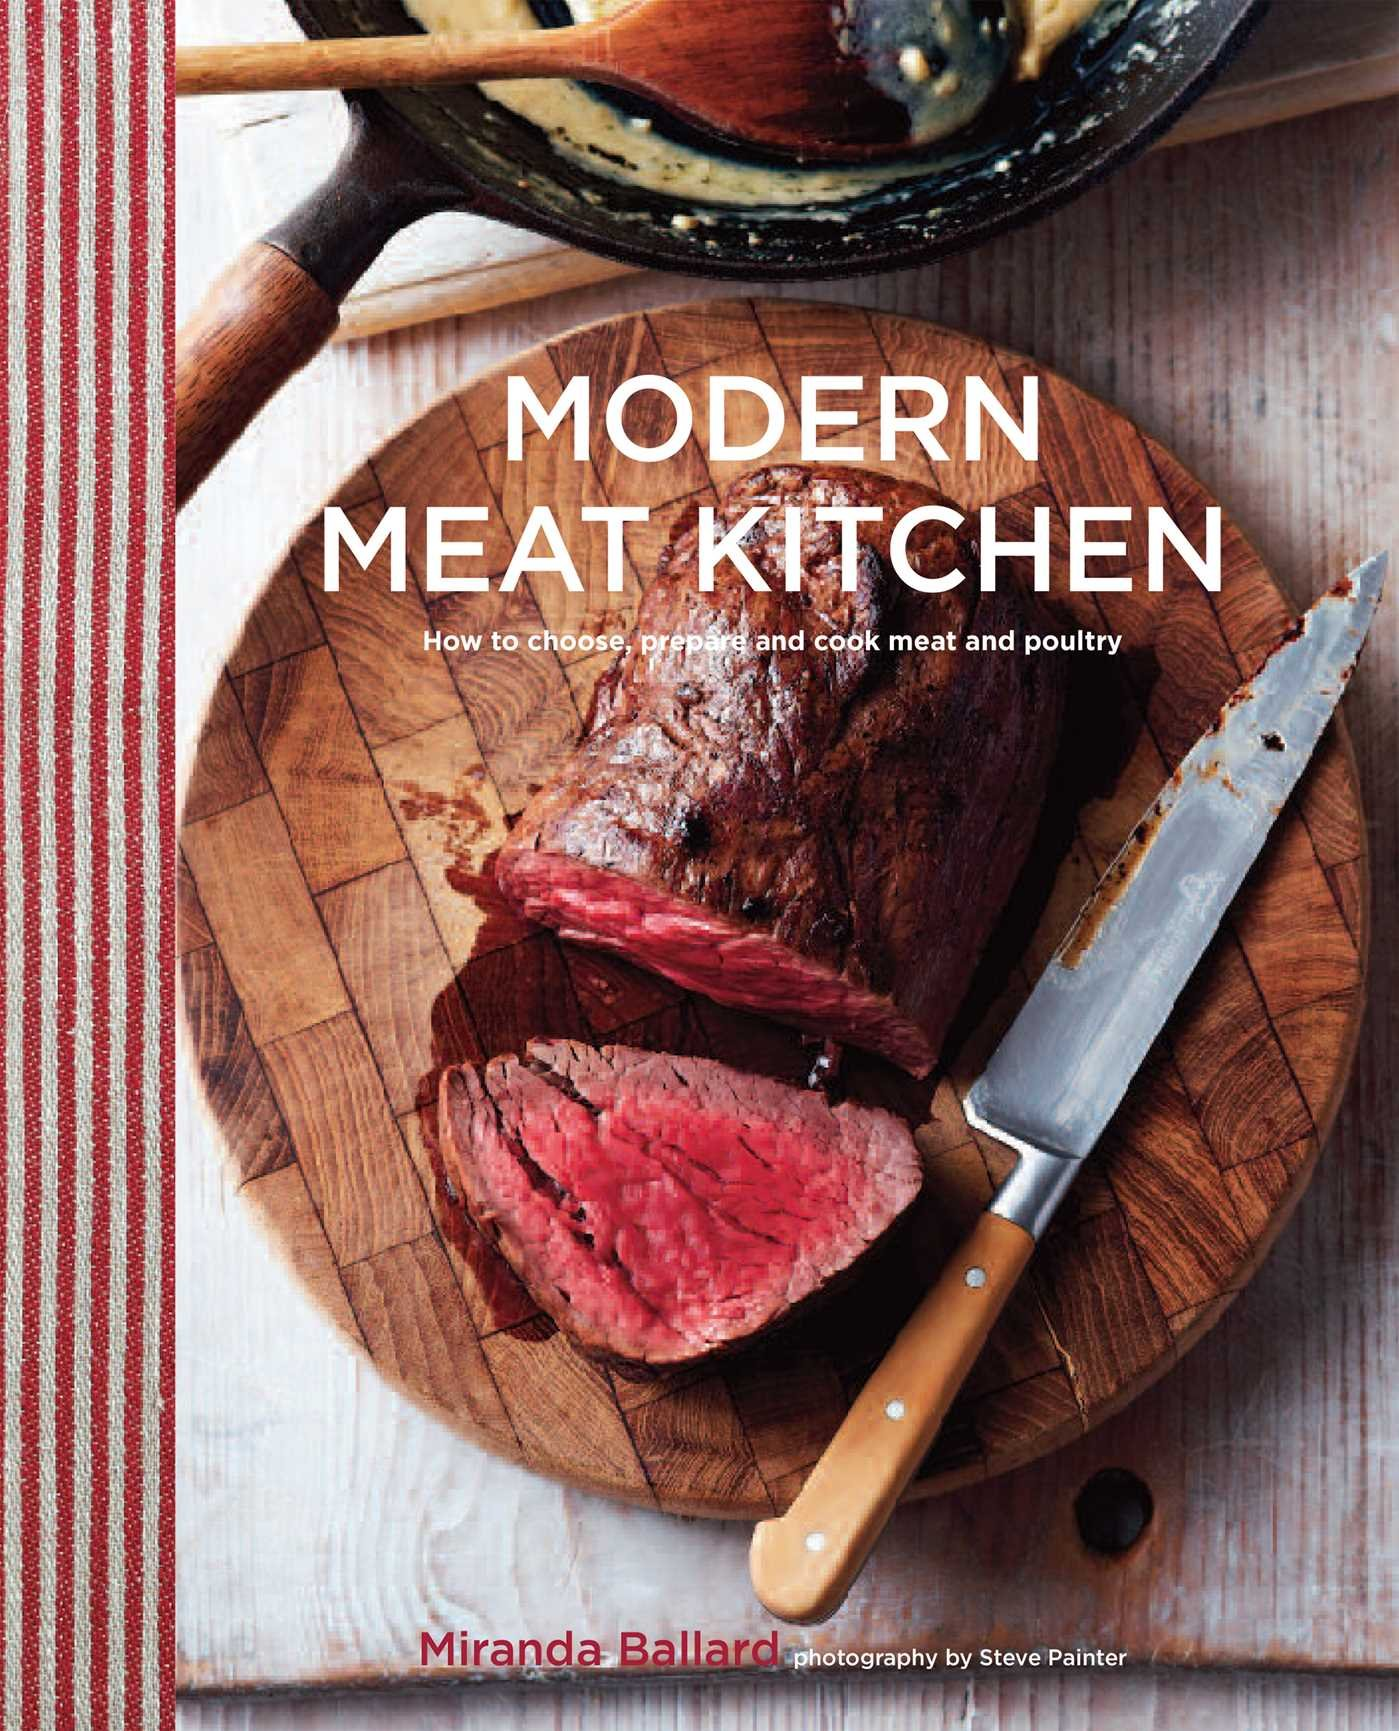 Modern Meat Kitchen: How to choose, prepare and cook meat